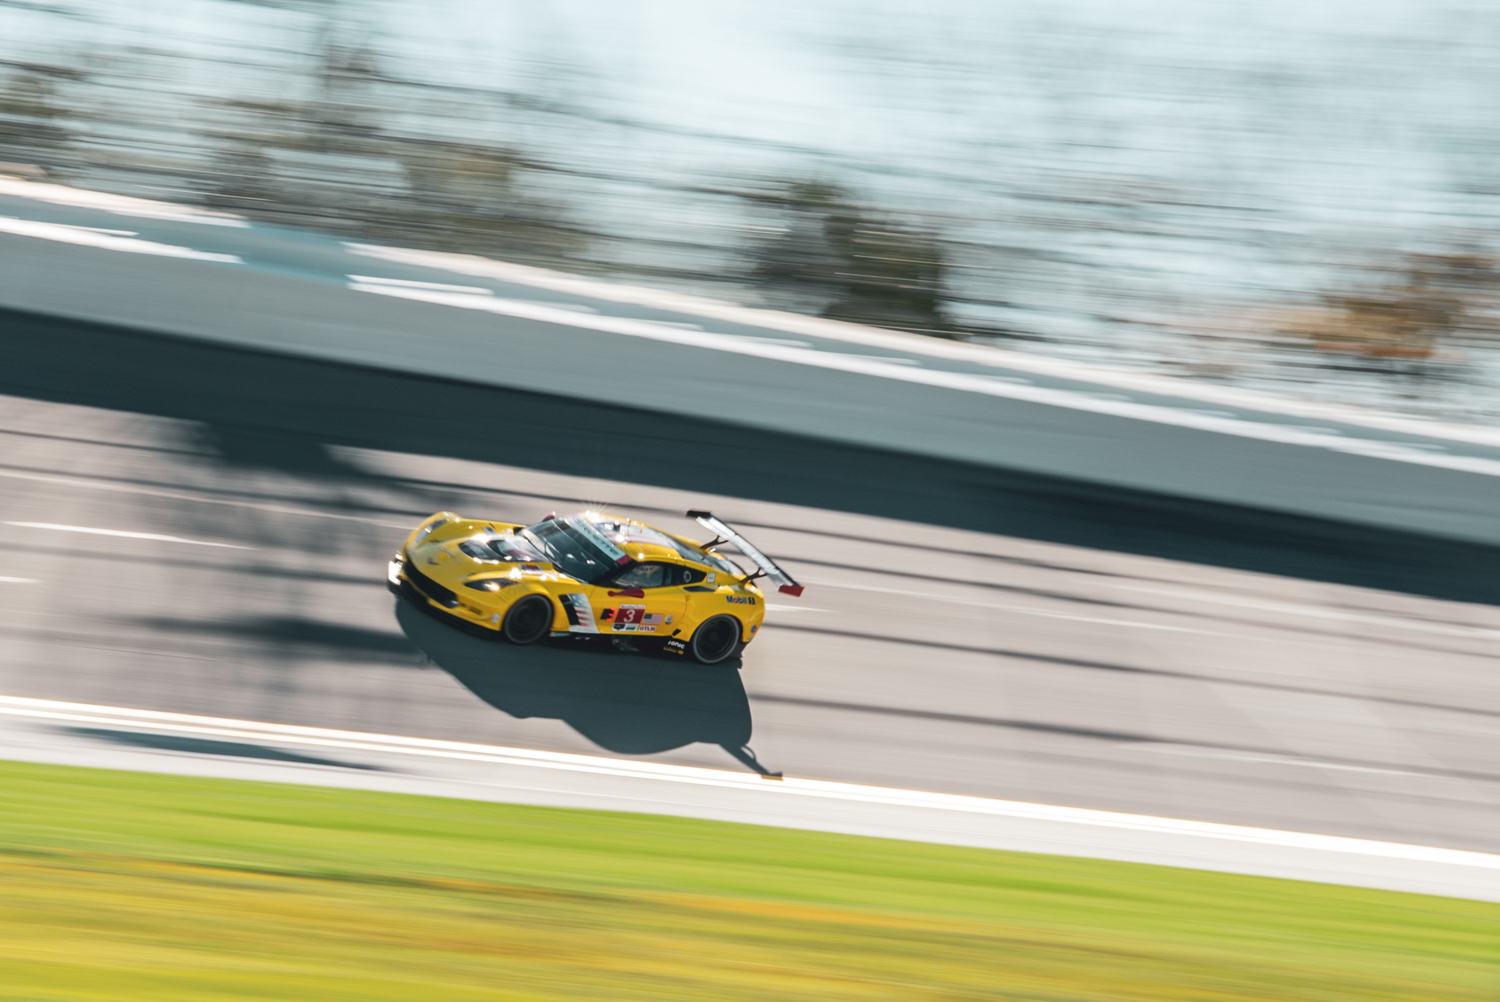 The sun was out for the final practice session on Friday prior to the 24-hour race. One of two Corvette C7Rs hits the high banks of the oval-road course.